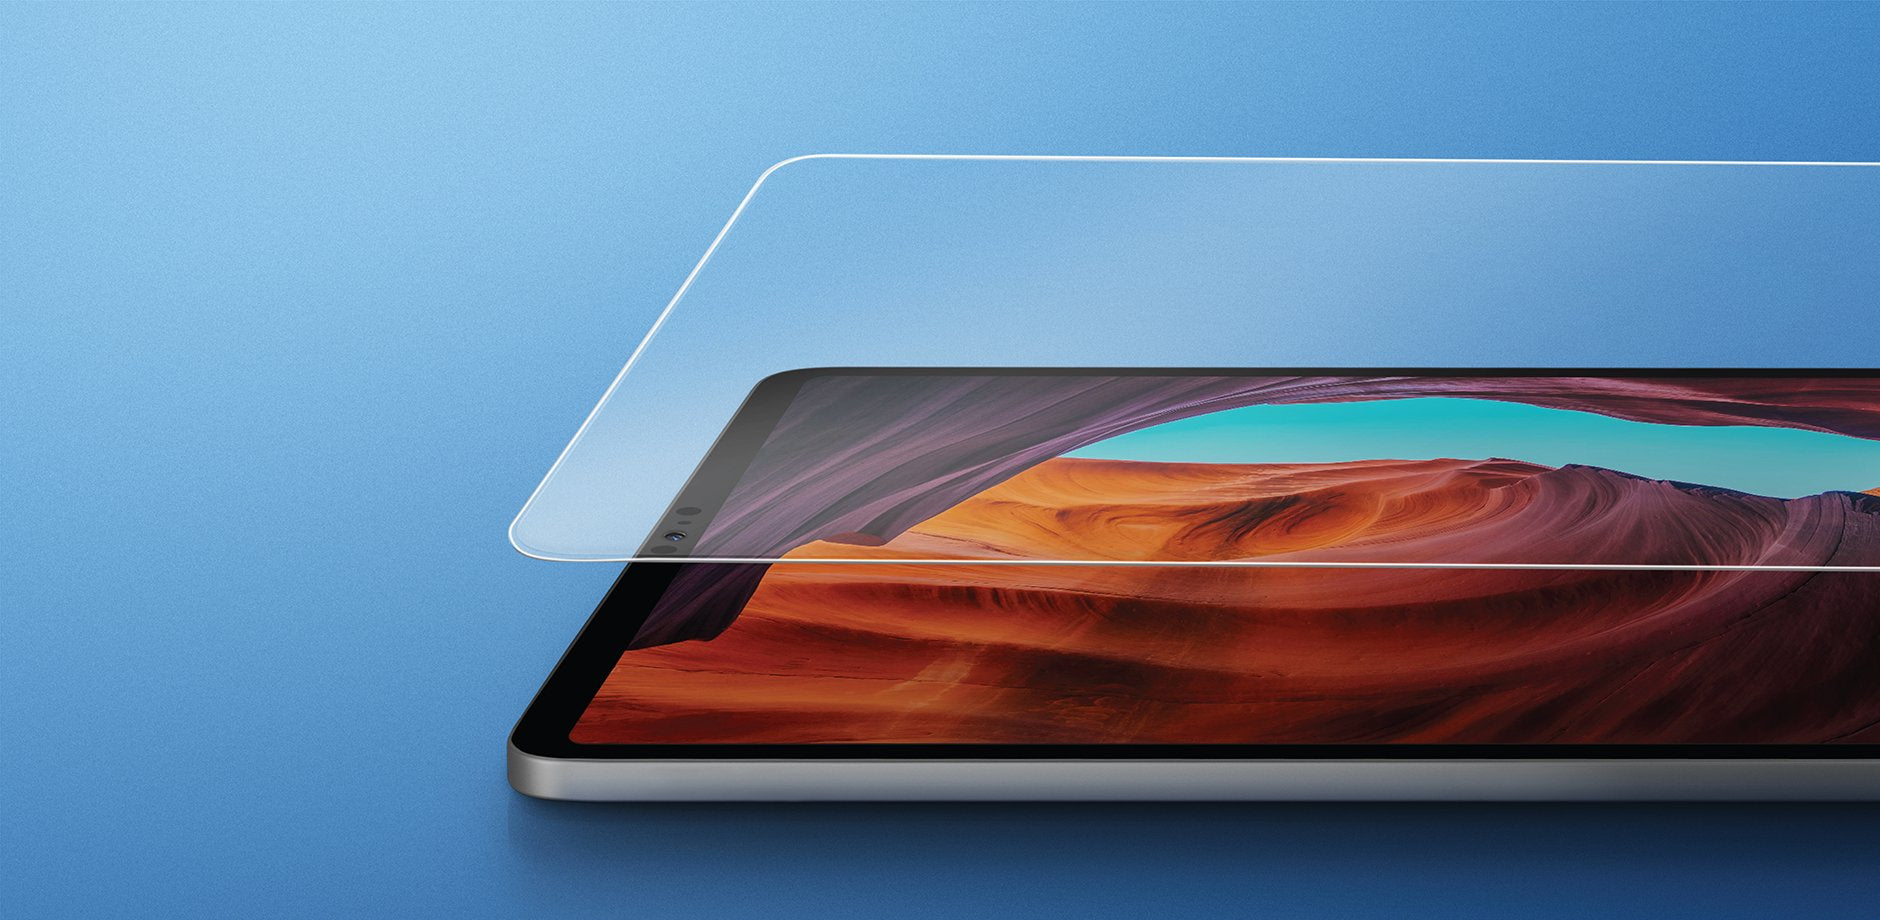 New iPhone 11 cases